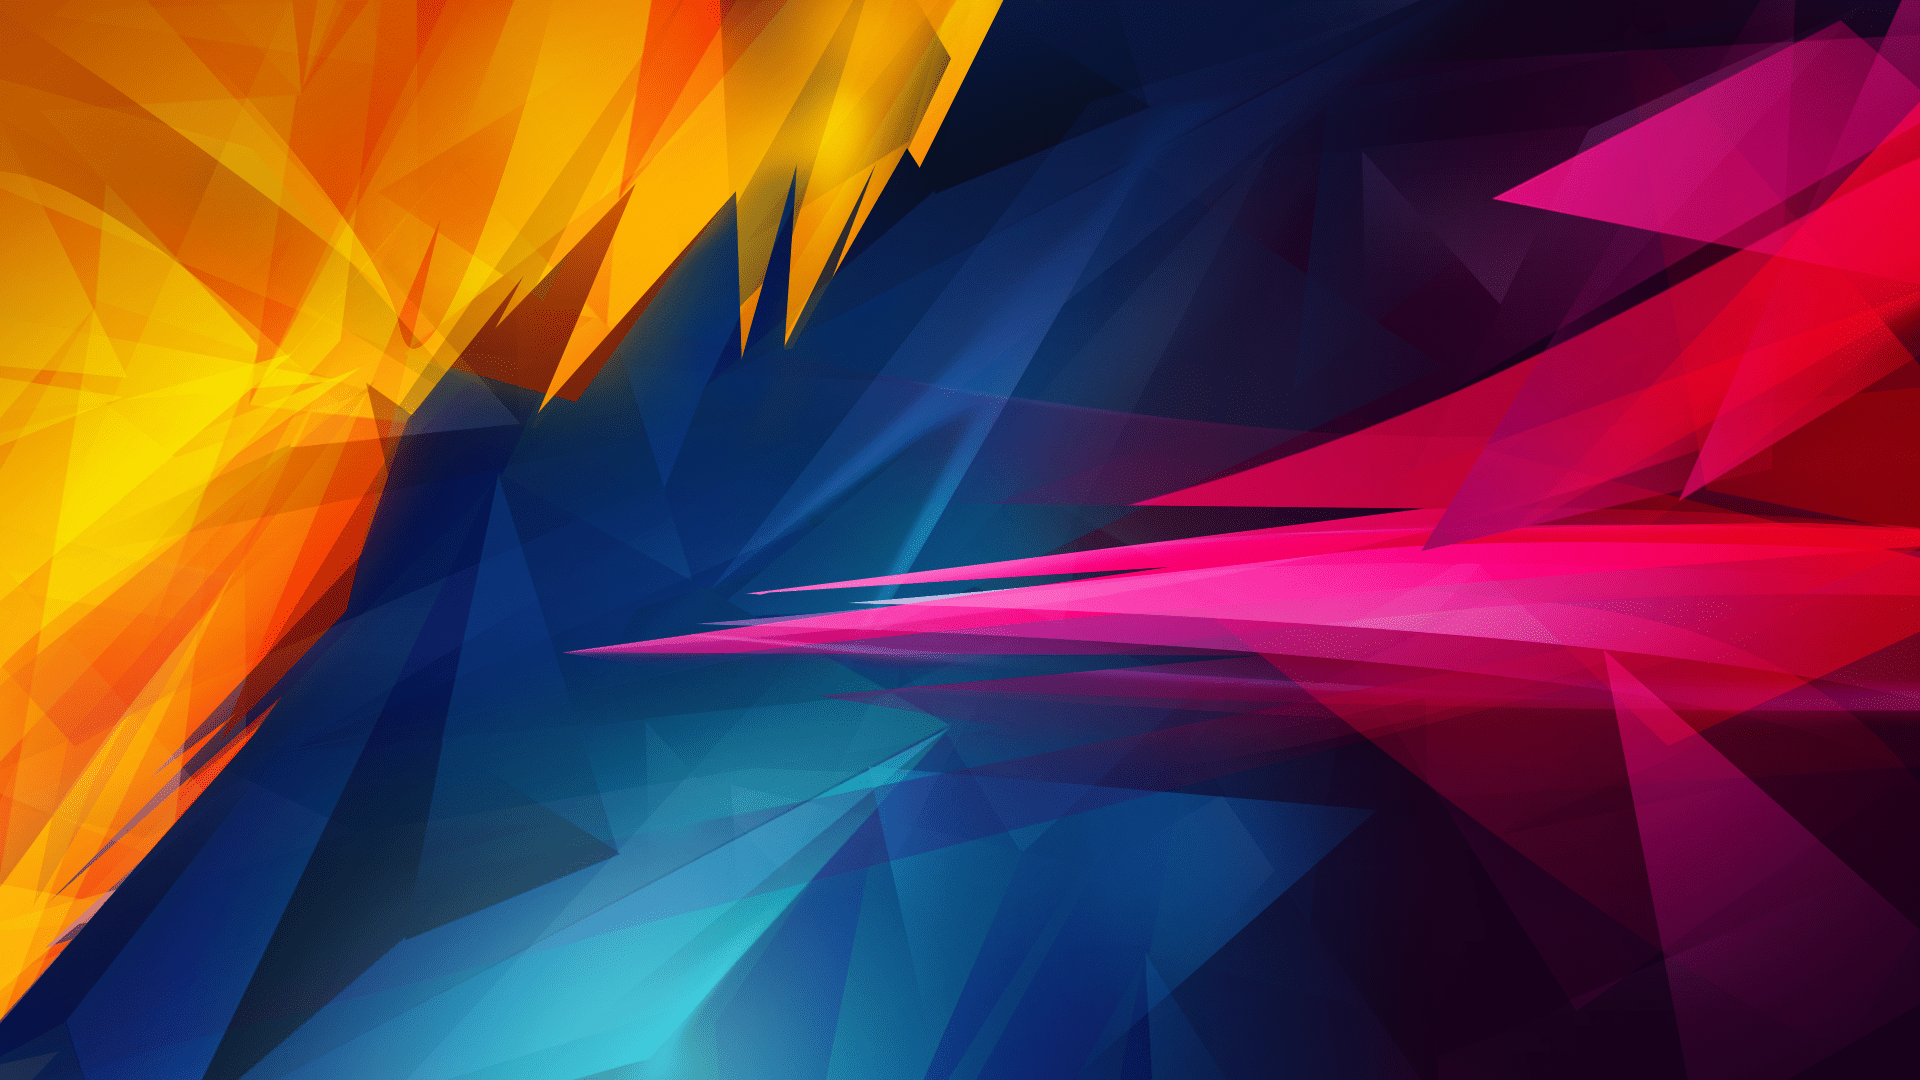 wallpaper of abstract download